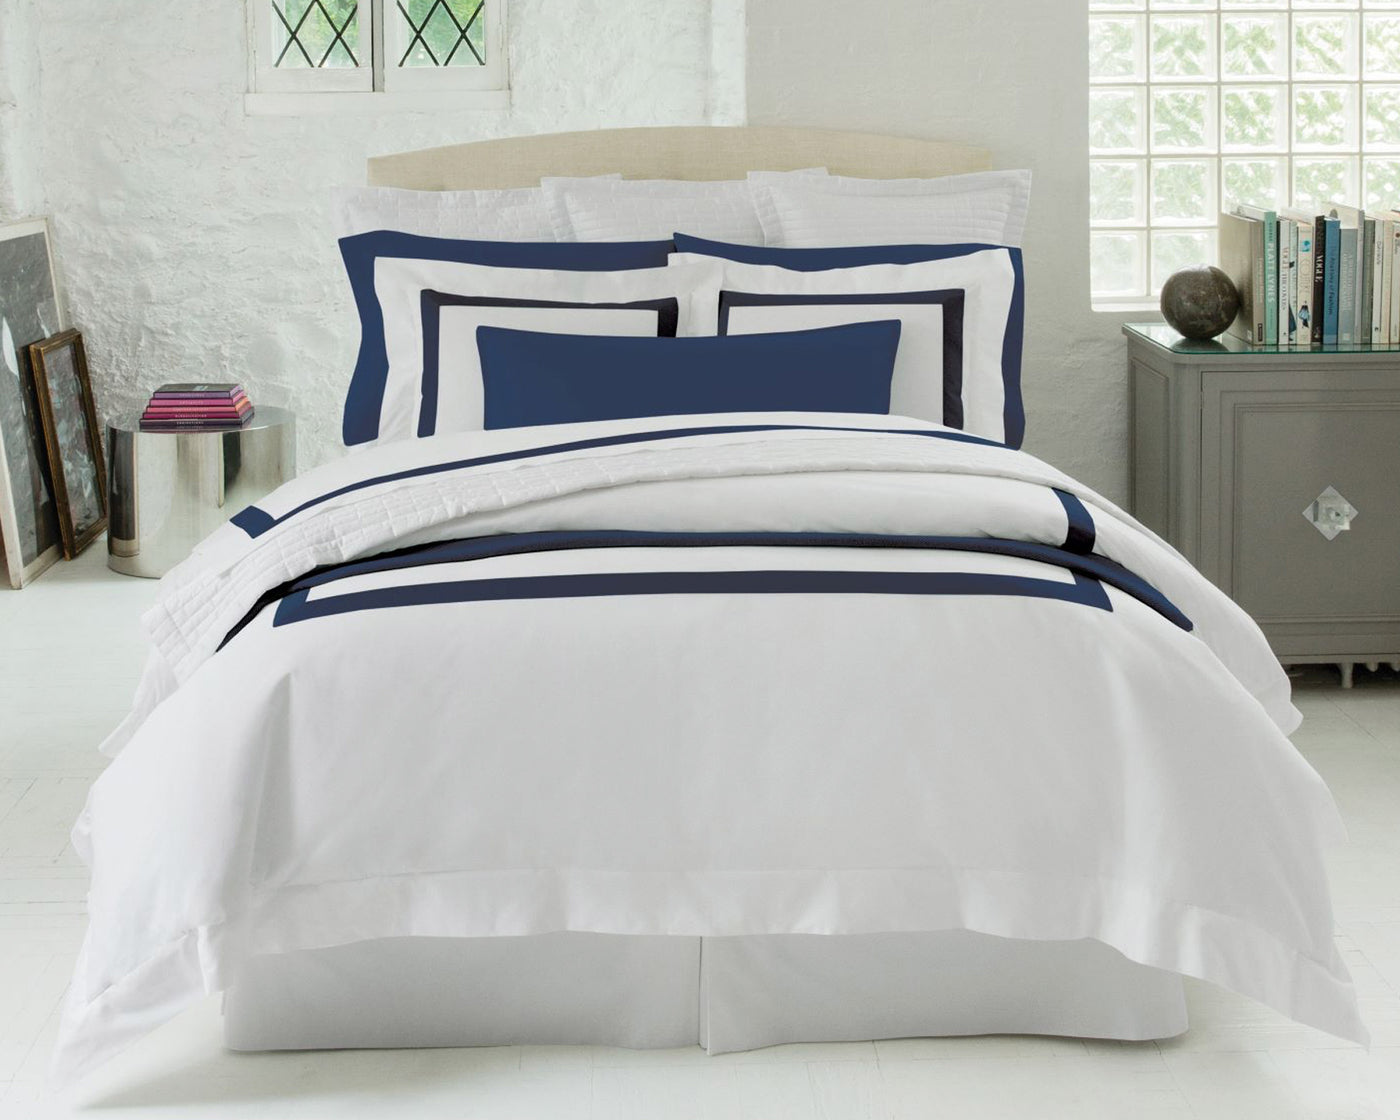 Orlo | Boudoir Pillow Sham